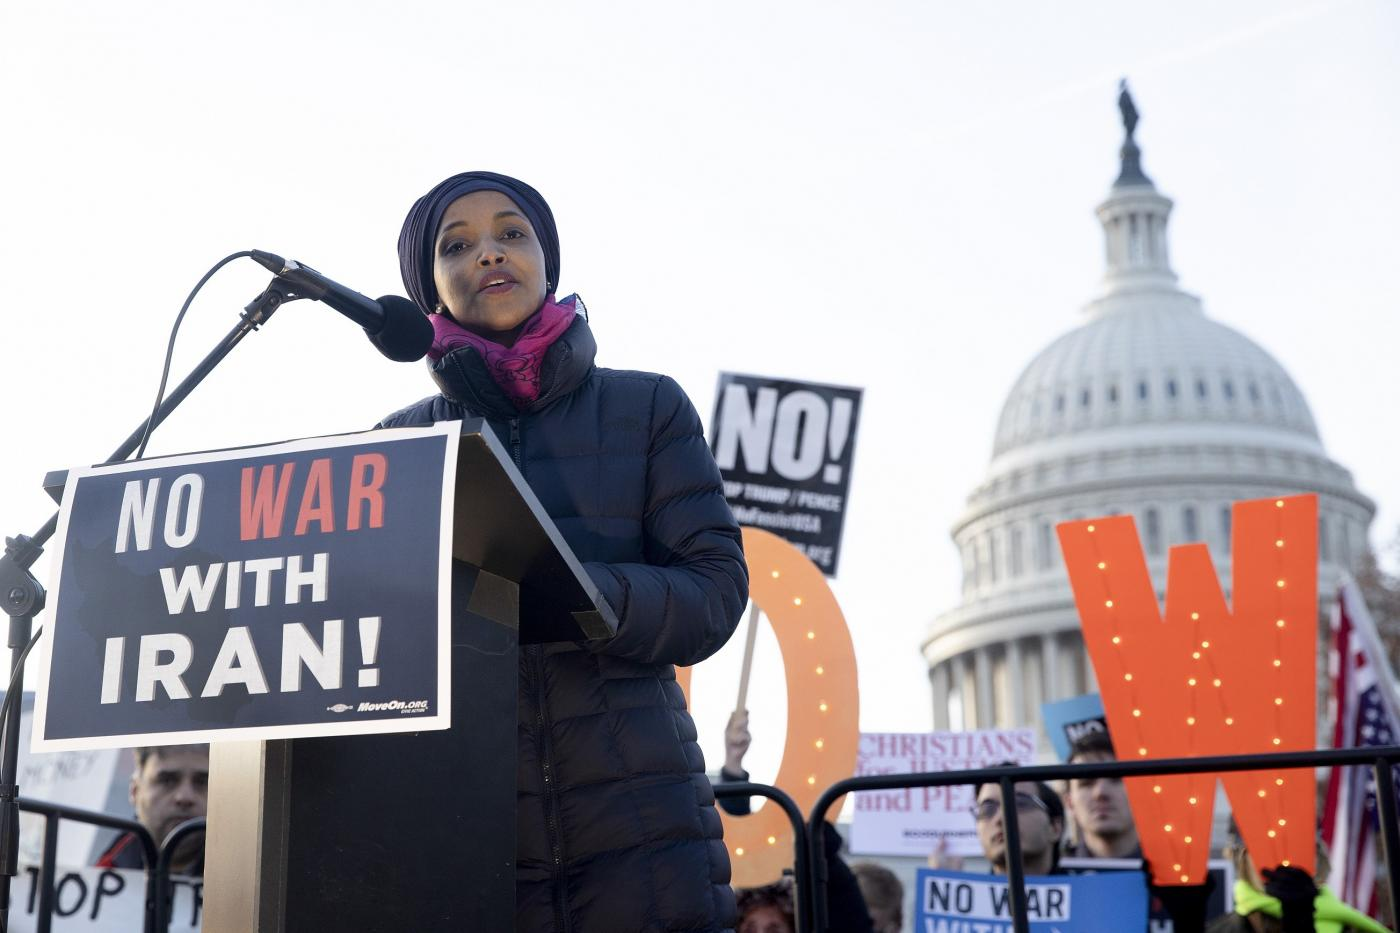 Ilhan Omar and the Iran letter: Was the backlash warranted?